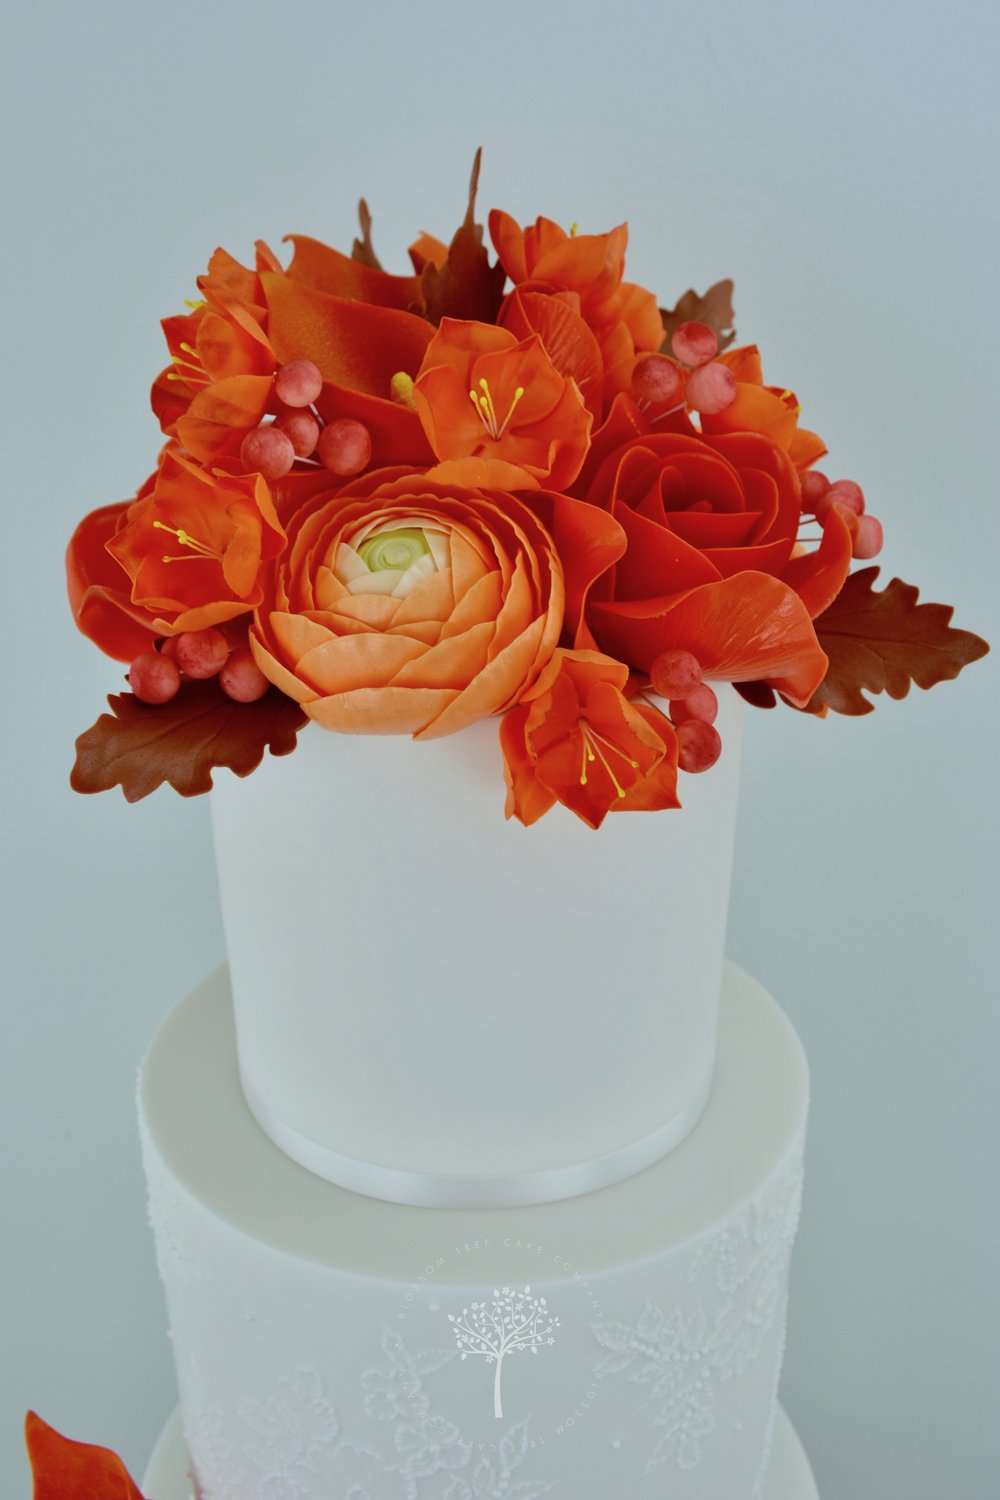 Autumn Lace wedding cake by Blossom Tree Cake Company Harrogate North Yorkshire - sugar flowers.jpg